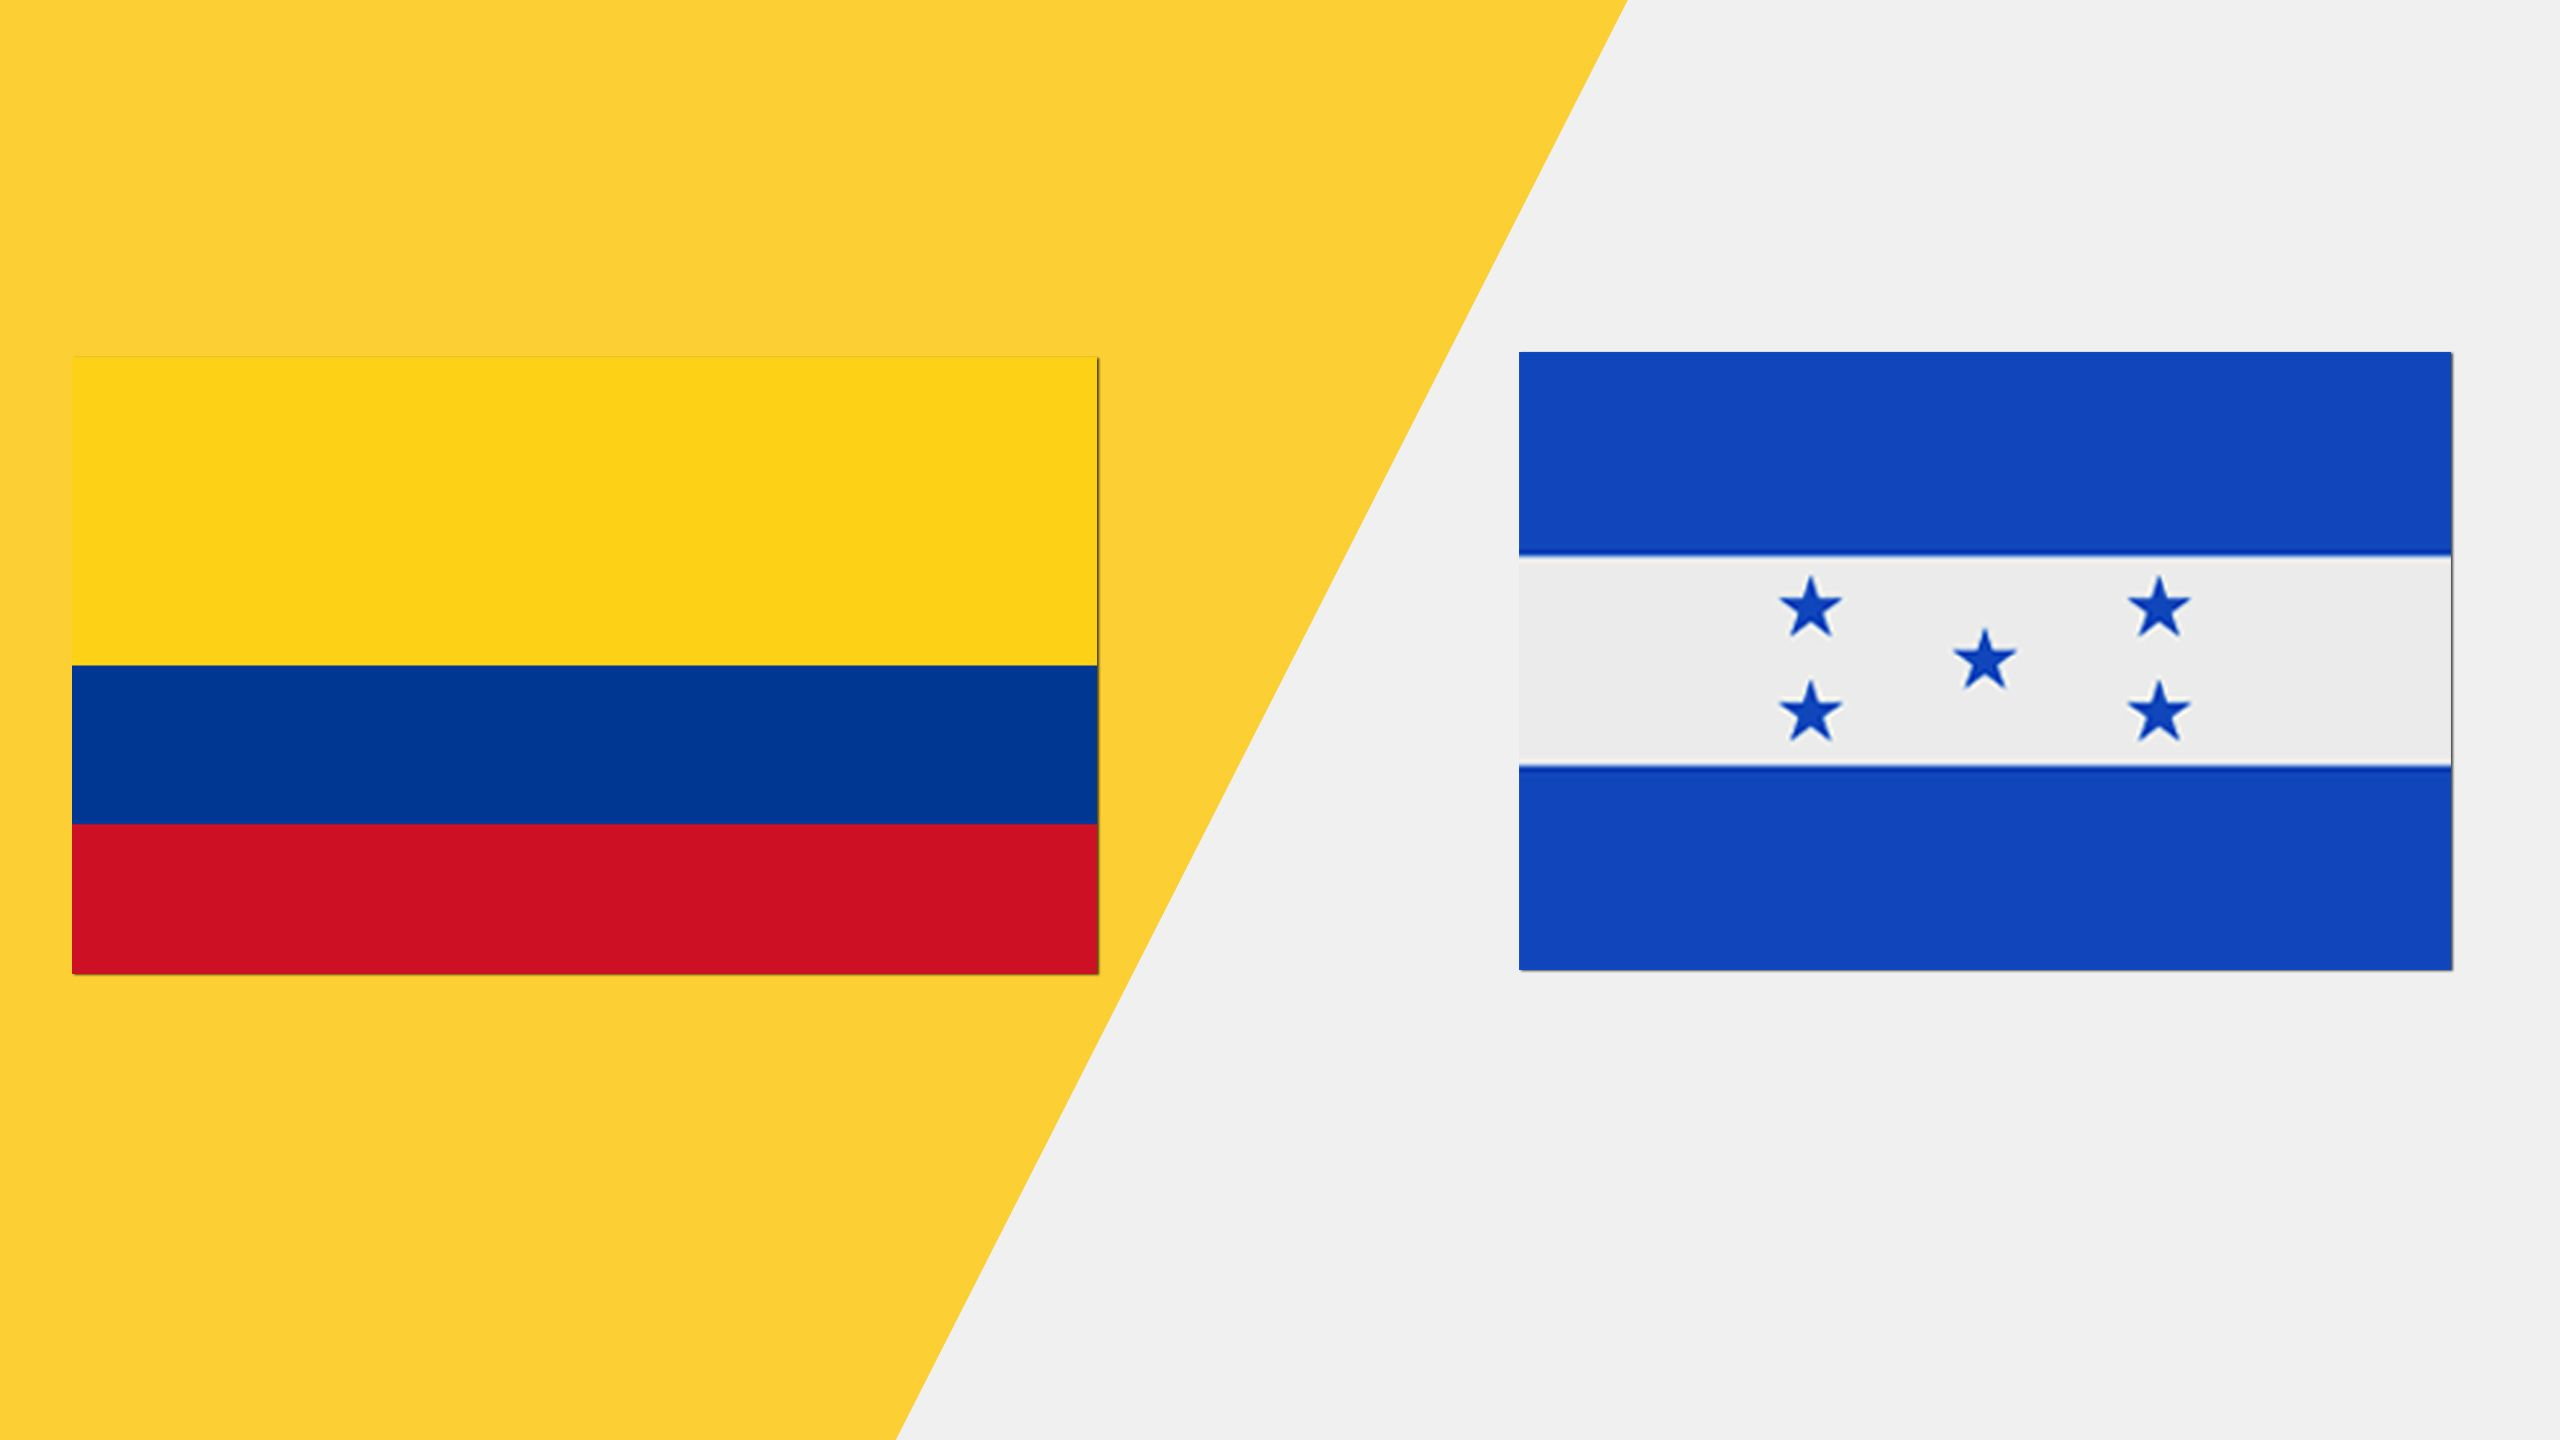 In Spanish - Colombia vs. Honduras (Grupo A)